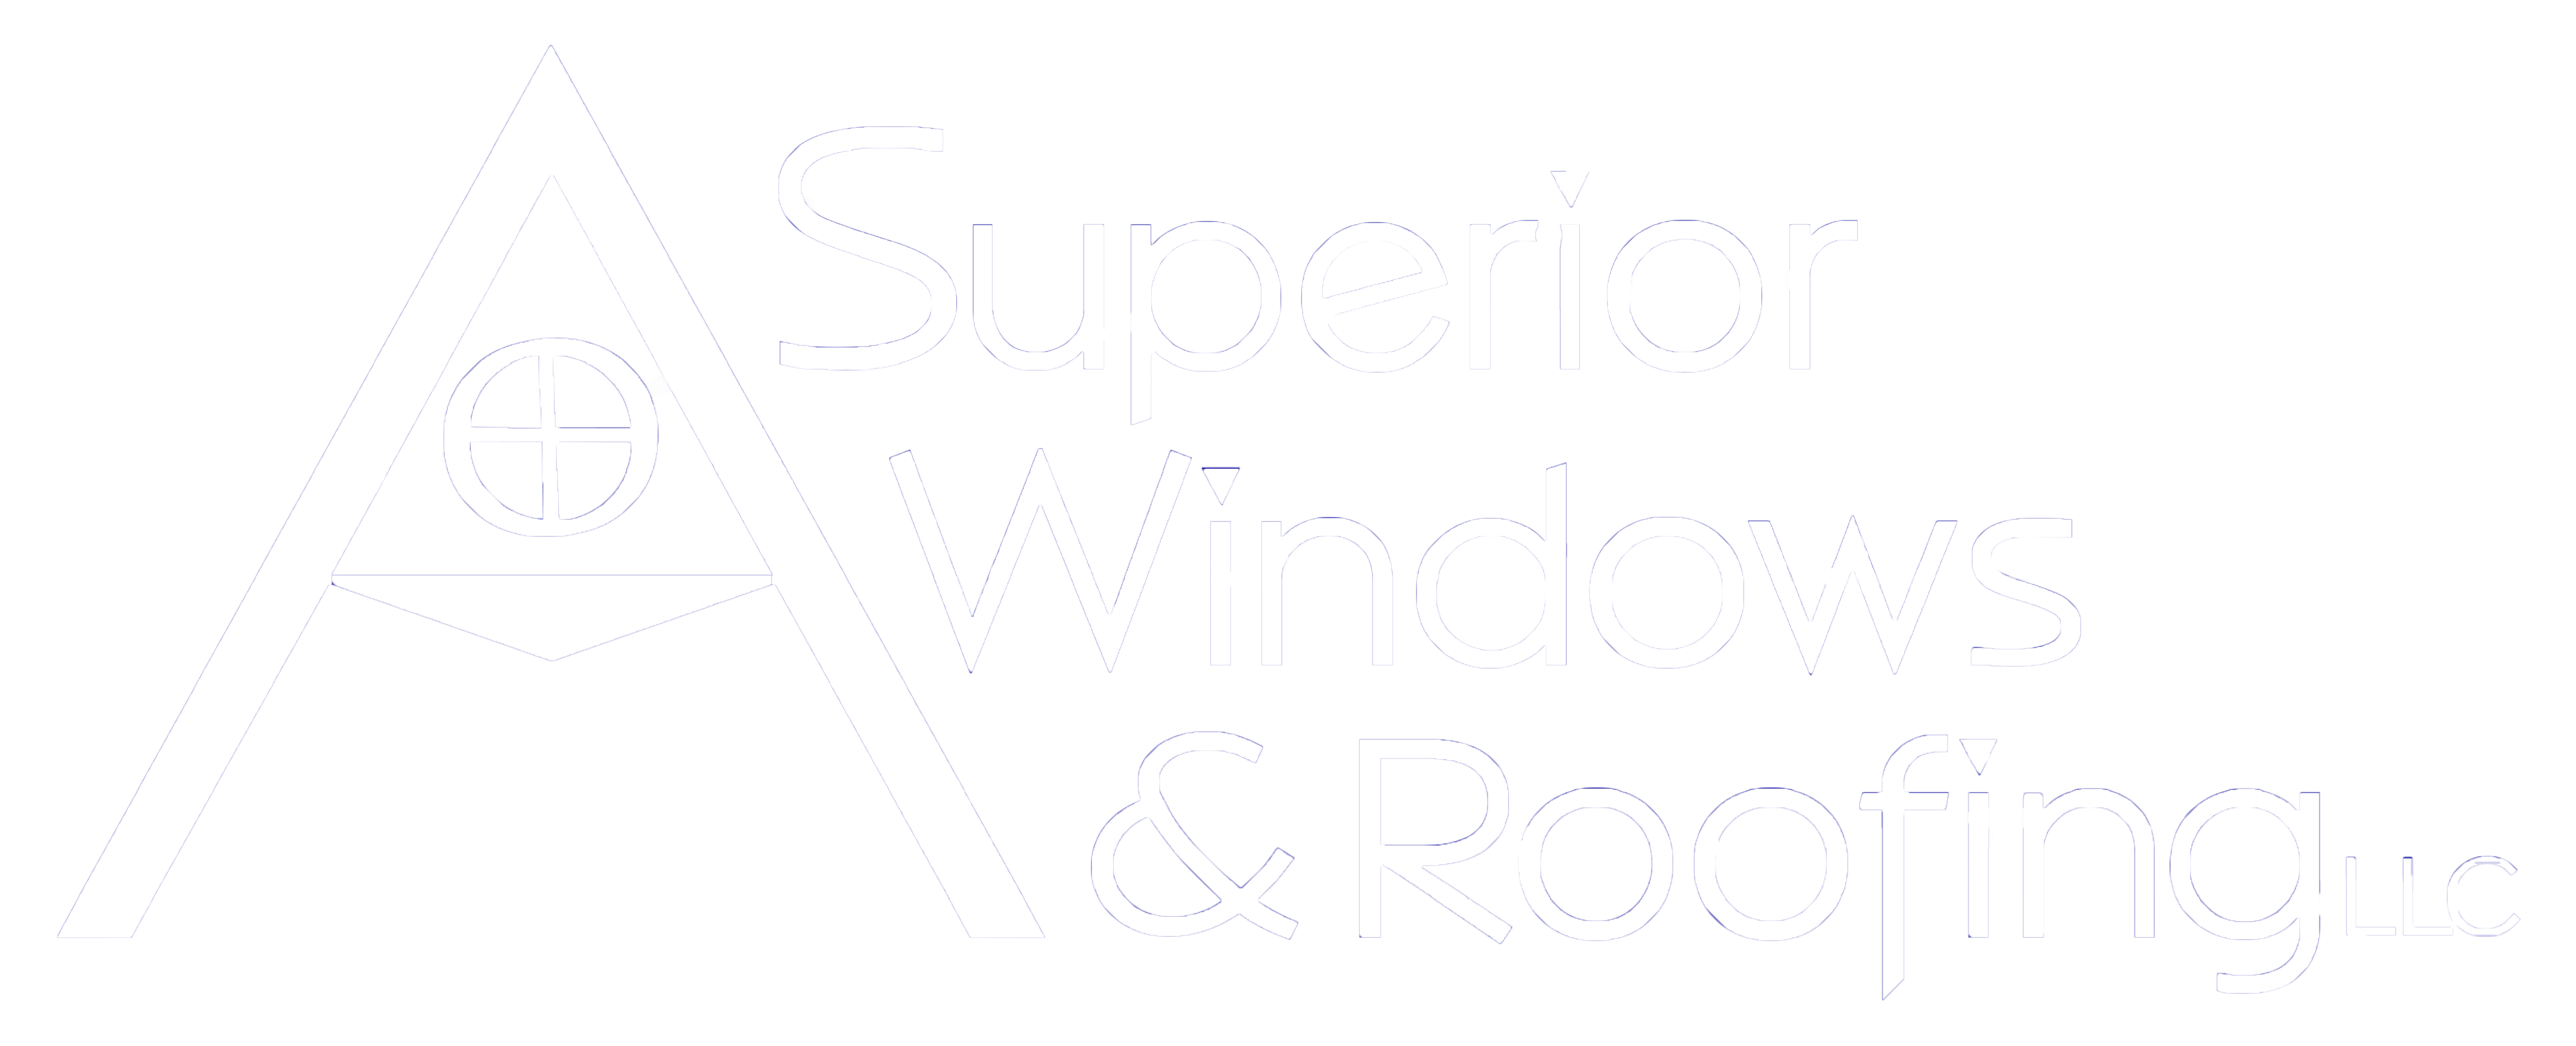 Superior Windows And Roofing Llc